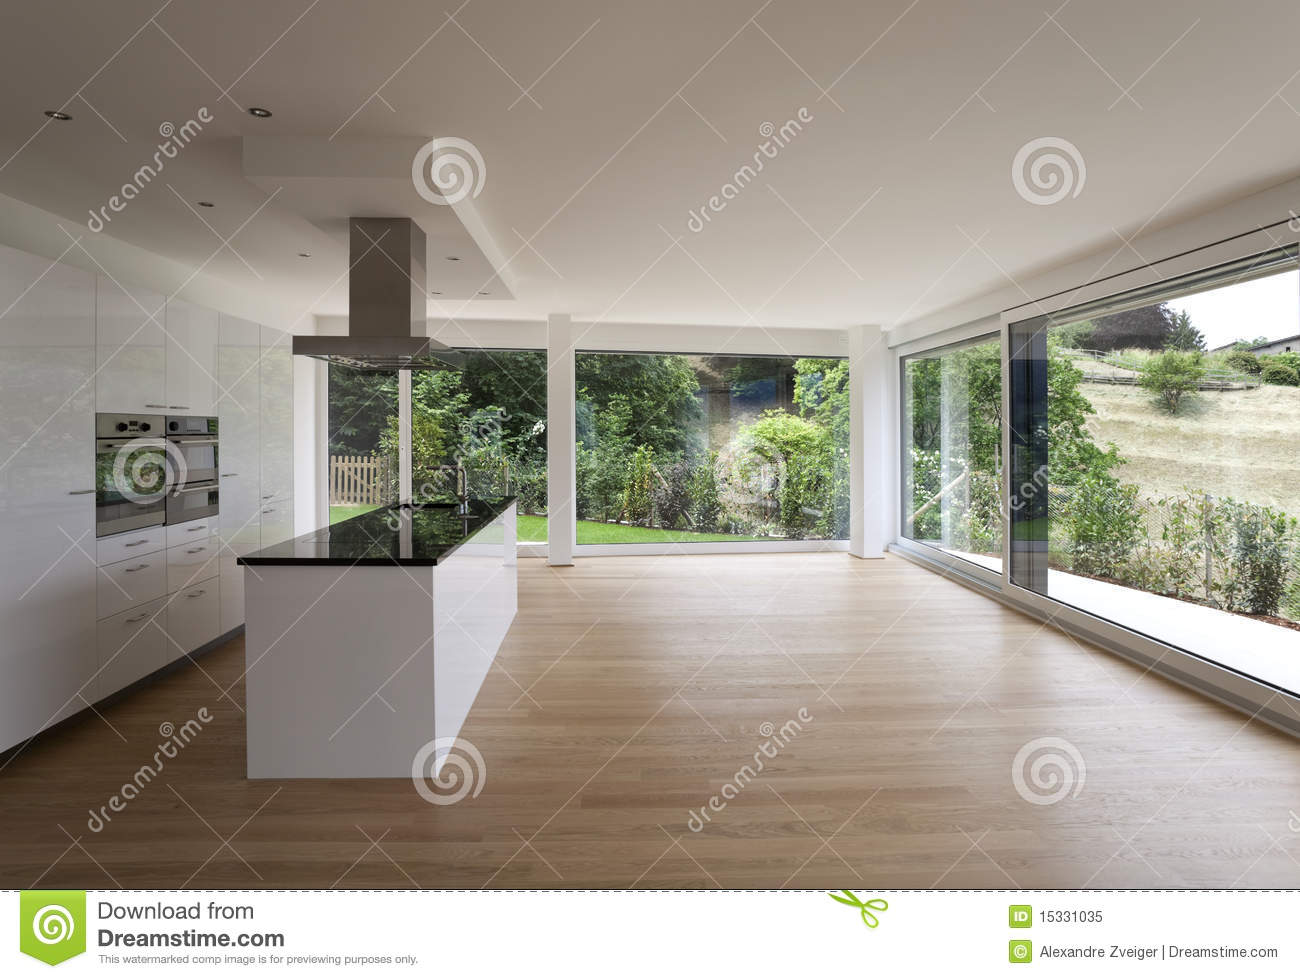 Bel int rieur d 39 une maison moderne photo libre de droits for Photos d interieur de maison